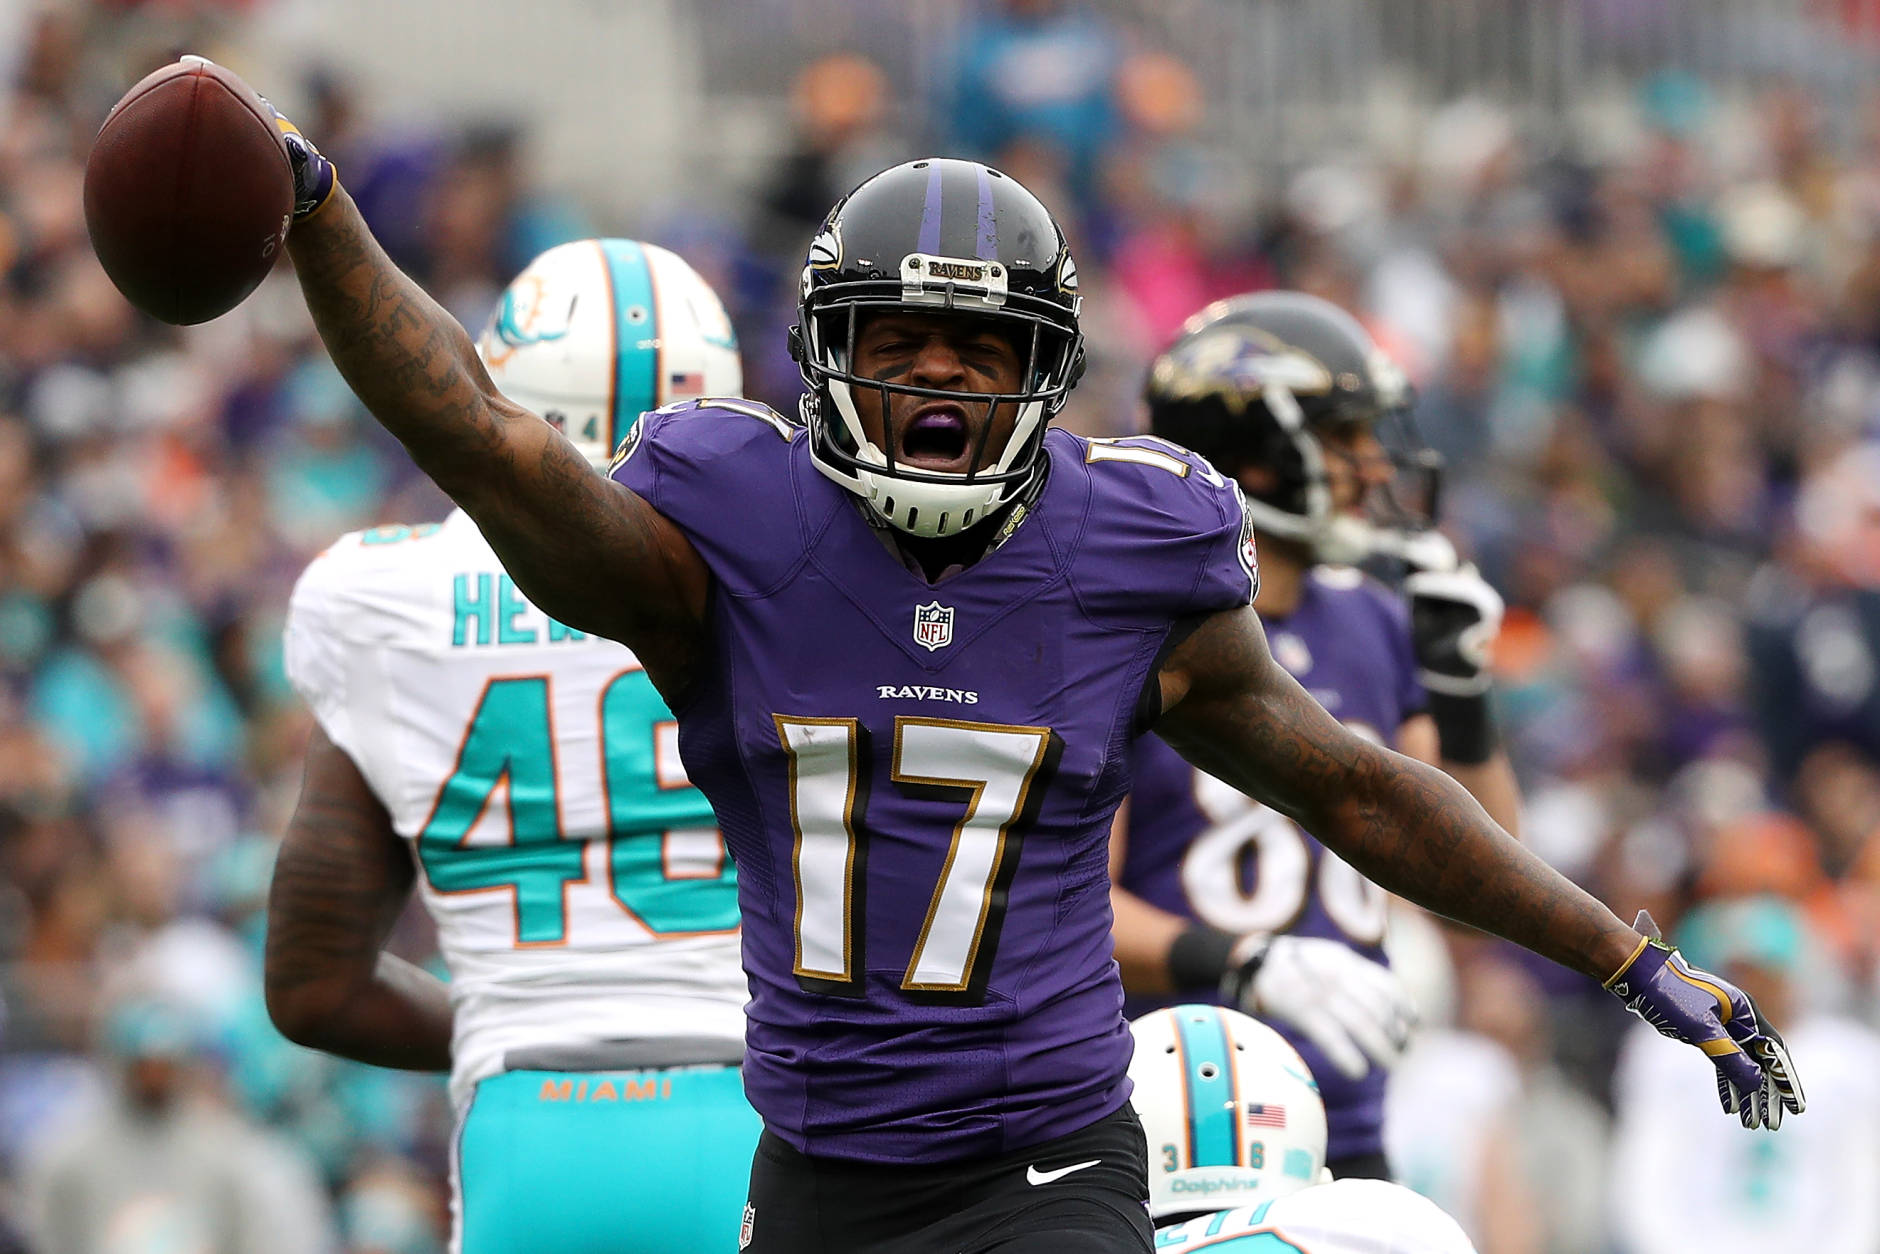 BALTIMORE, MD - DECEMBER 4: Wide receiver Mike Wallace #17 of the Baltimore Ravens reacts after making a catch against the Miami Dolphins in the first quarter at M&T Bank Stadium on December 4, 2016 in Baltimore, Maryland. (Photo by Patrick Smith/Getty Images)